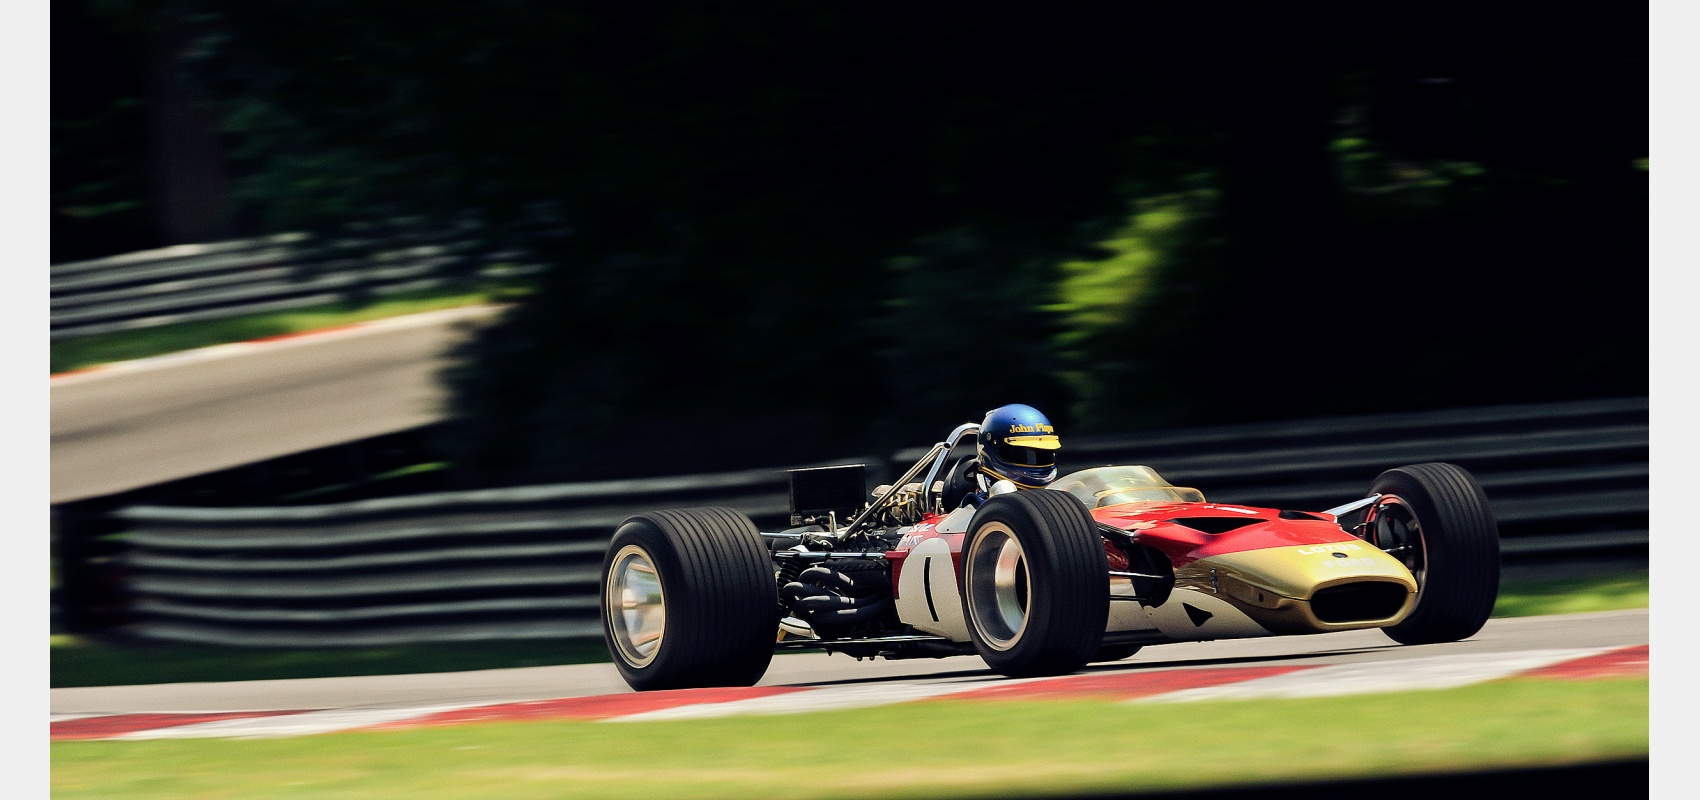 Motorsport, photography, F1, Masters, Championship, Gold, Leaf, Lotus, 49